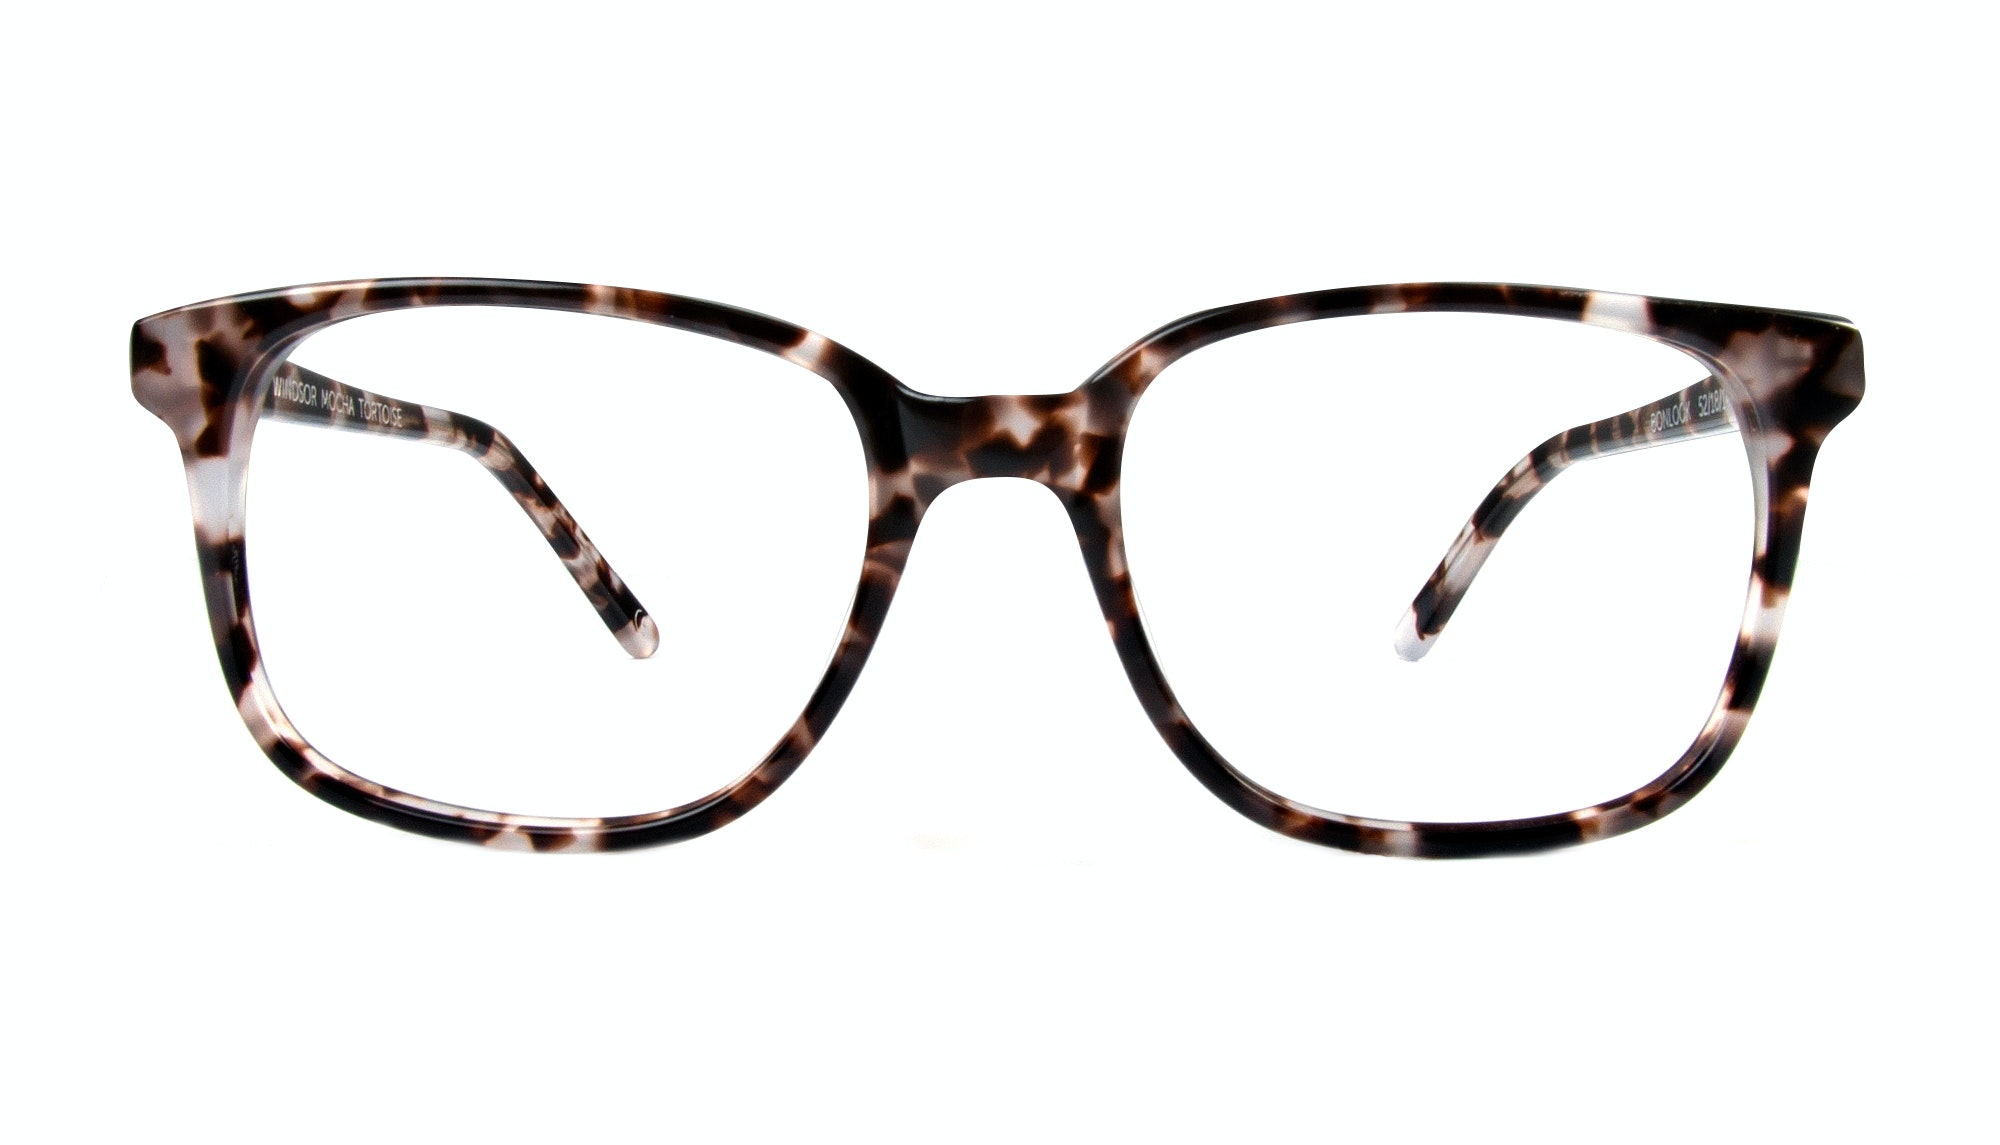 Affordable Fashion Glasses Rectangle Square Eyeglasses Women Windsor Mocha Tortoise Front